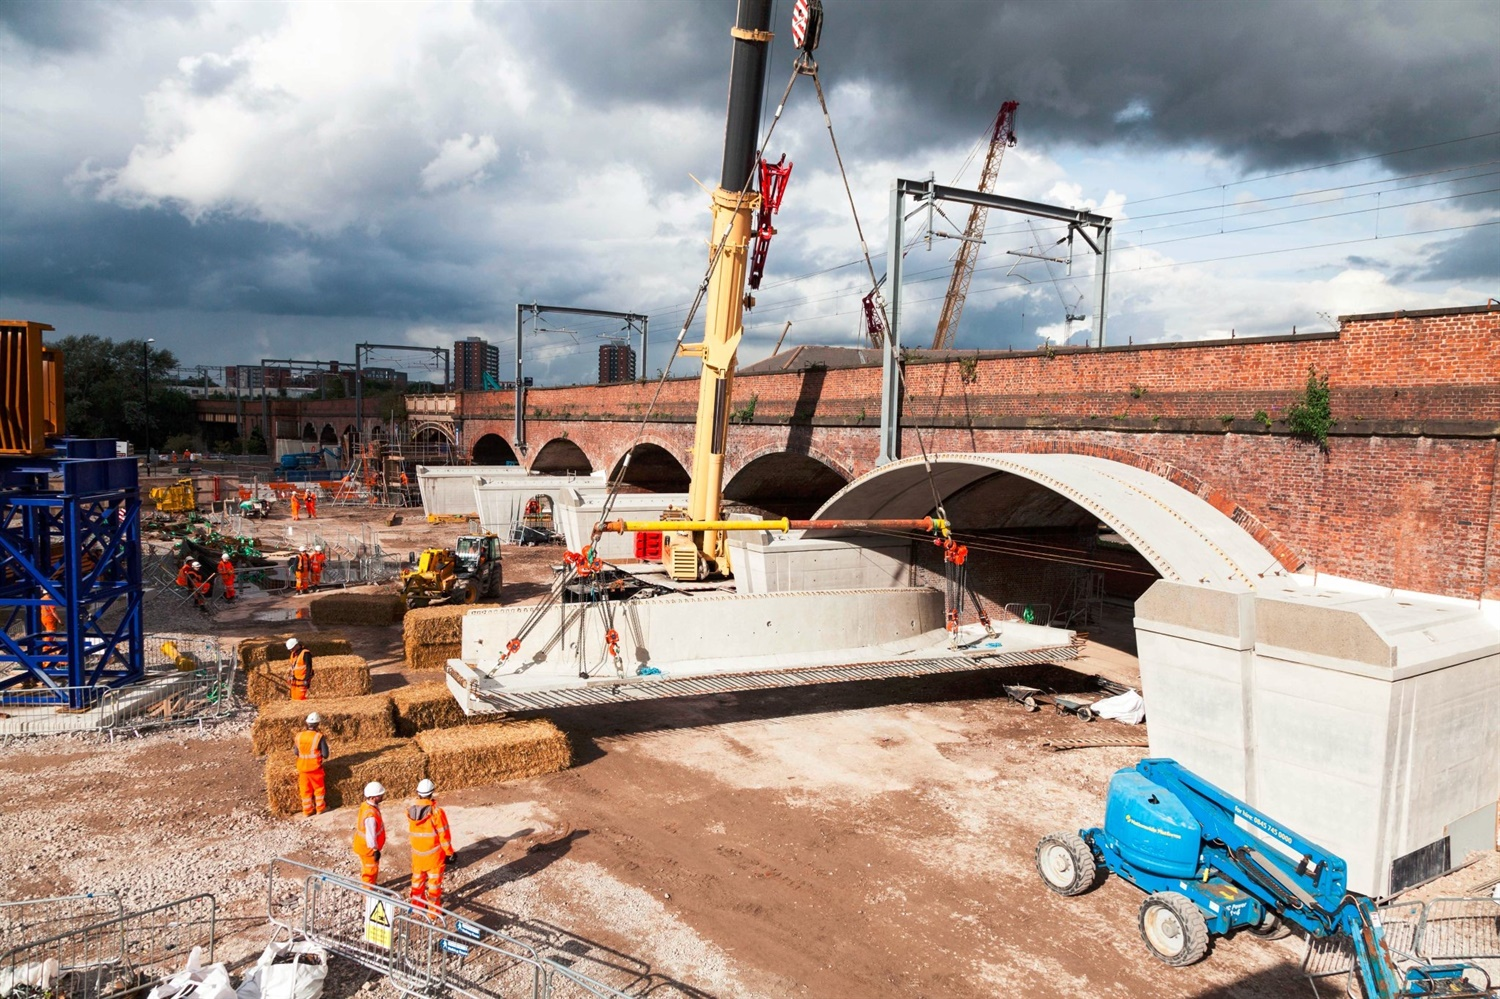 NR promises Manchester airport services via Ordsall Chord by end of 2017